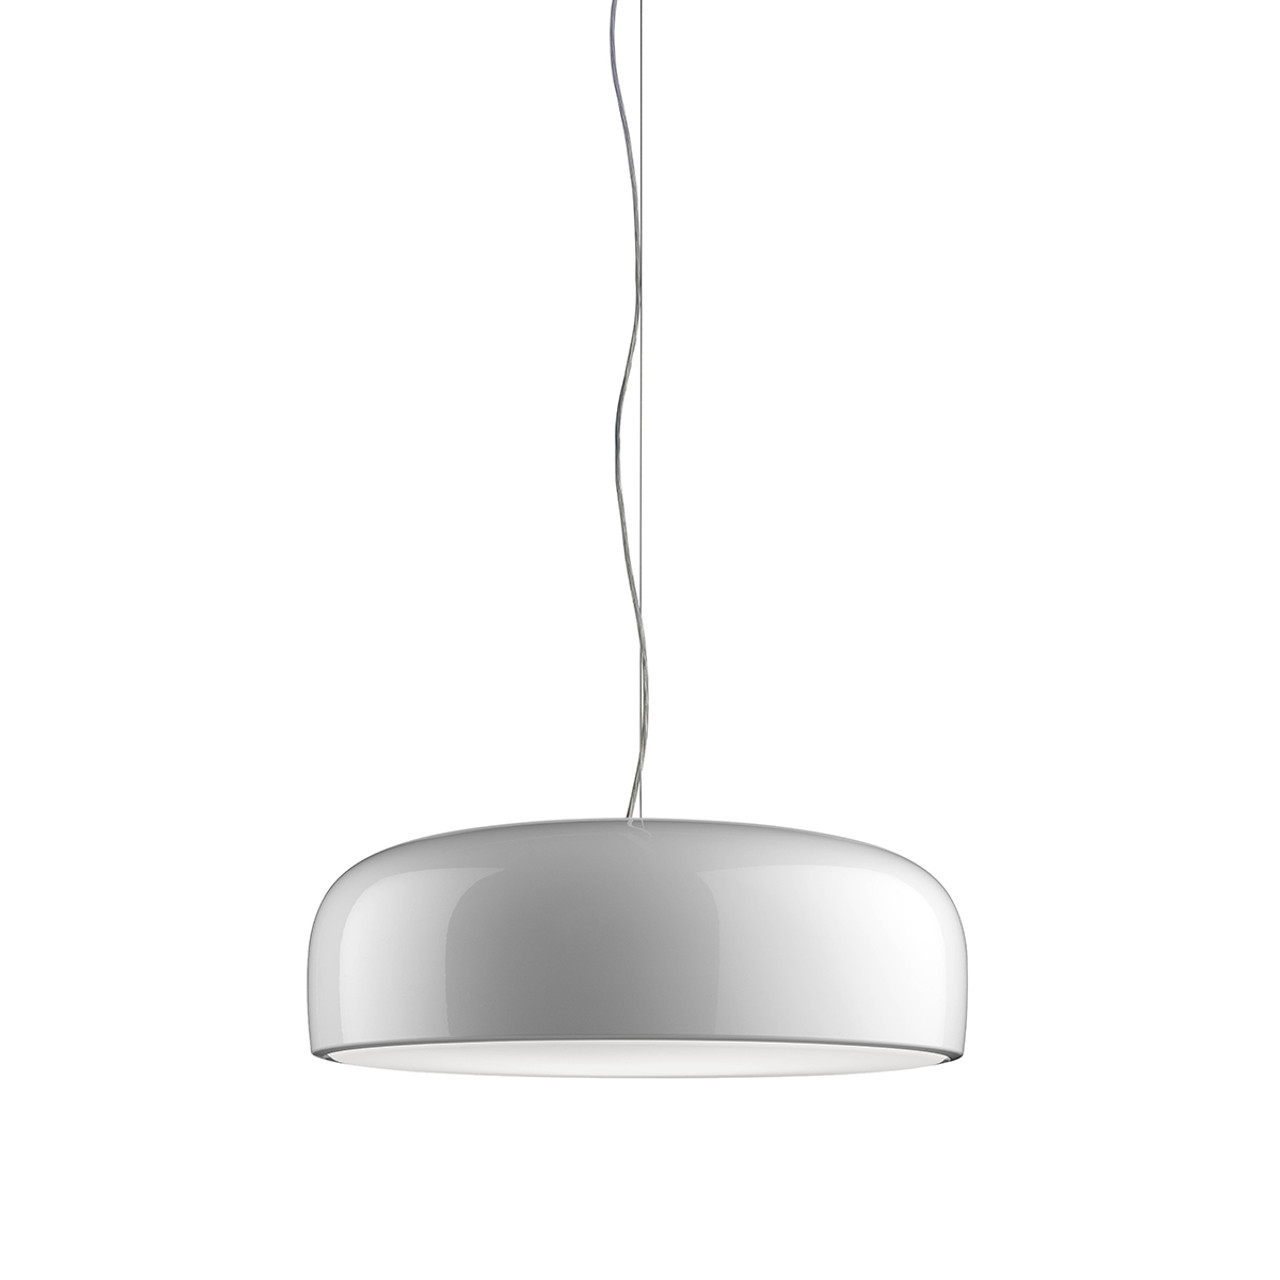 Smithfield S Suspension Modern Pendant Lamp In Led And Halogen Flos Usa